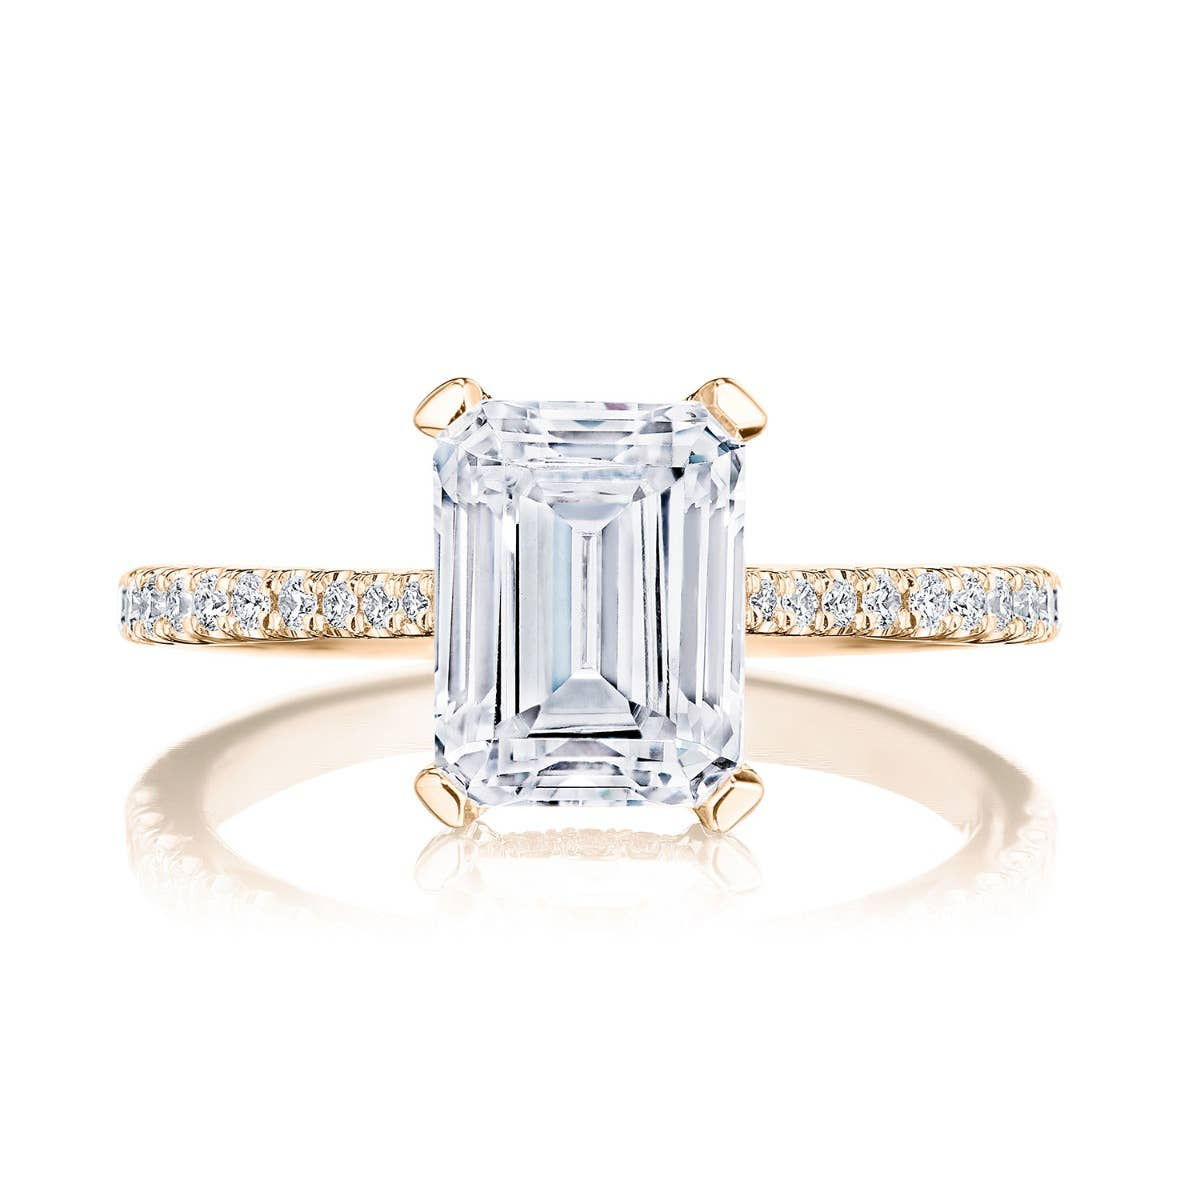 Emerald cut engagement ring by Tacori on white background